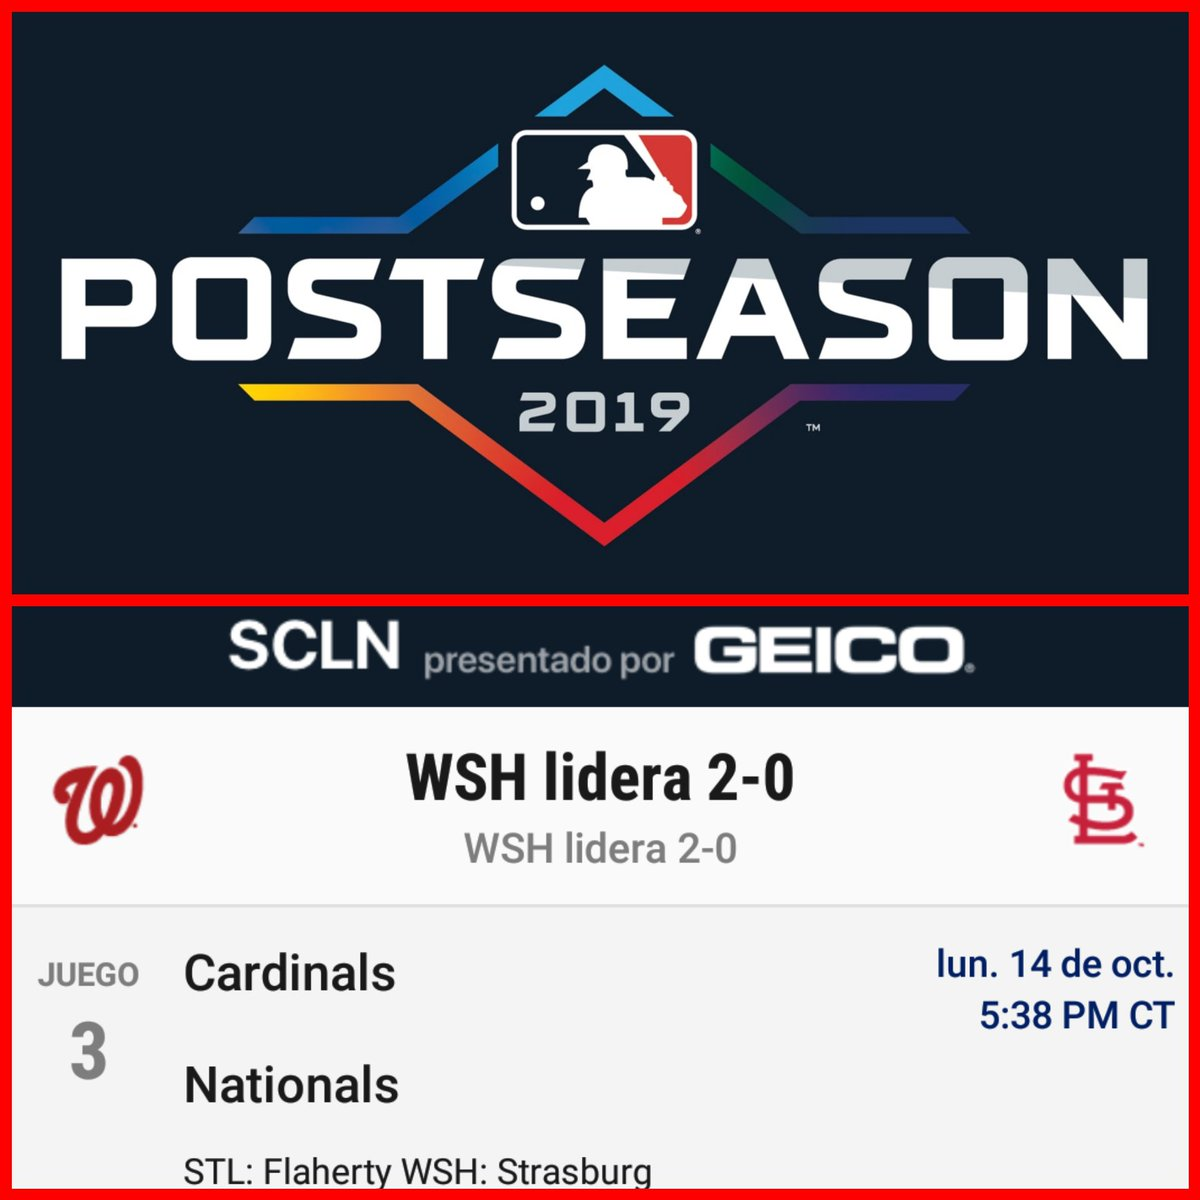 @MLB #MLB #MLBPostseason  #NLCS #SerieCampeonato  Juego 3 @Nationals vs @Cardinals  #Nationals vs #Cardinals  #OnePursuit #TimeToFly  Hora de CRC  #Nationals lidera la serie 2-0 ante #Cardinals